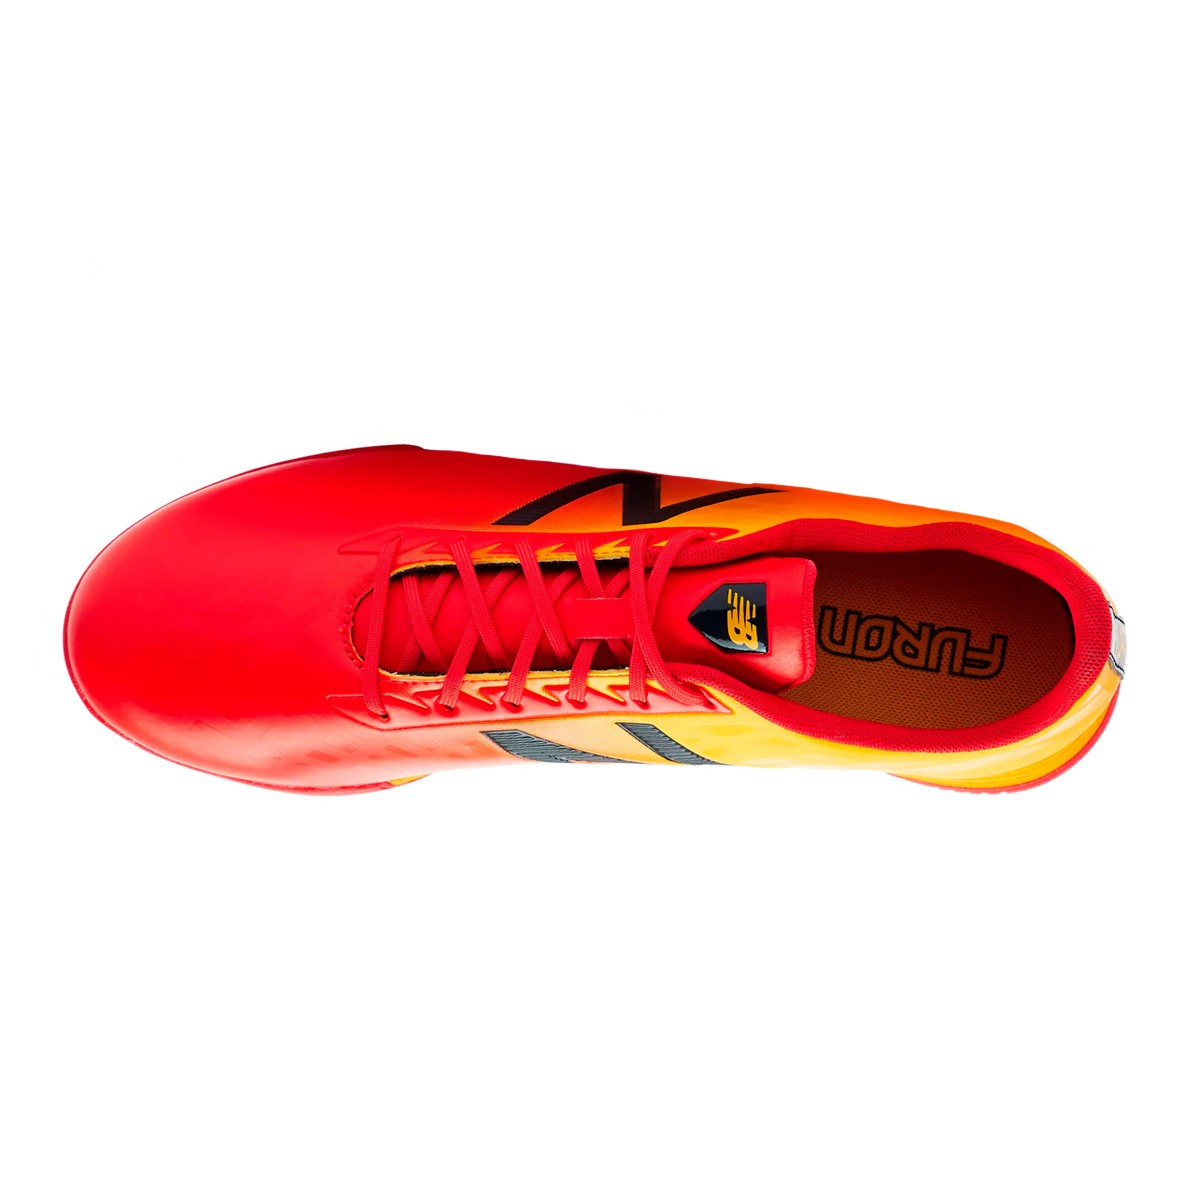 55afdc7c8 Futsal Boot New Balance Furon 4.0 Dispatch Indoor Flame - Tienda de fútbol  Fútbol Emotion